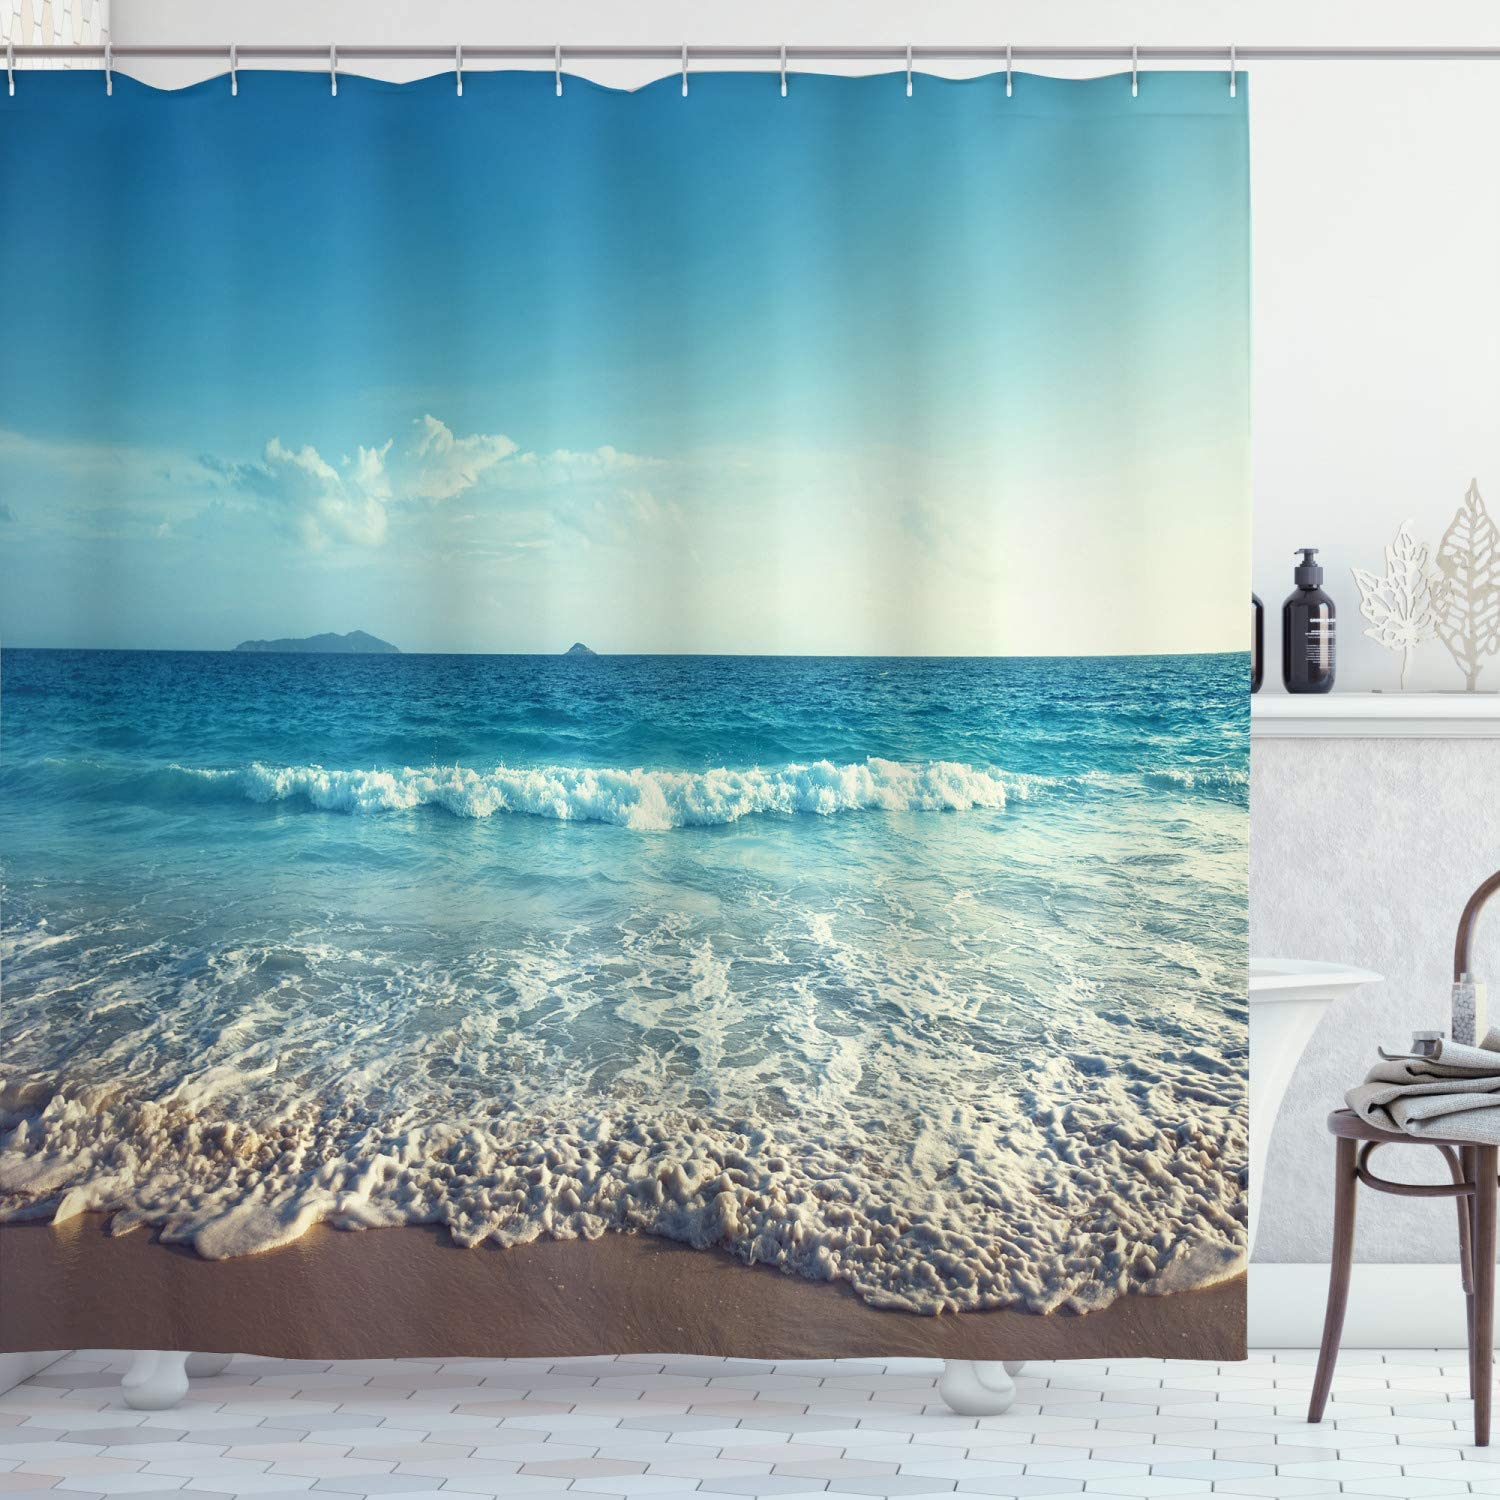 Atlanta Mall Ambesonne Modern Shower Curtain Our shop OFFers the best service Sunset Beach Seychelles on Summ